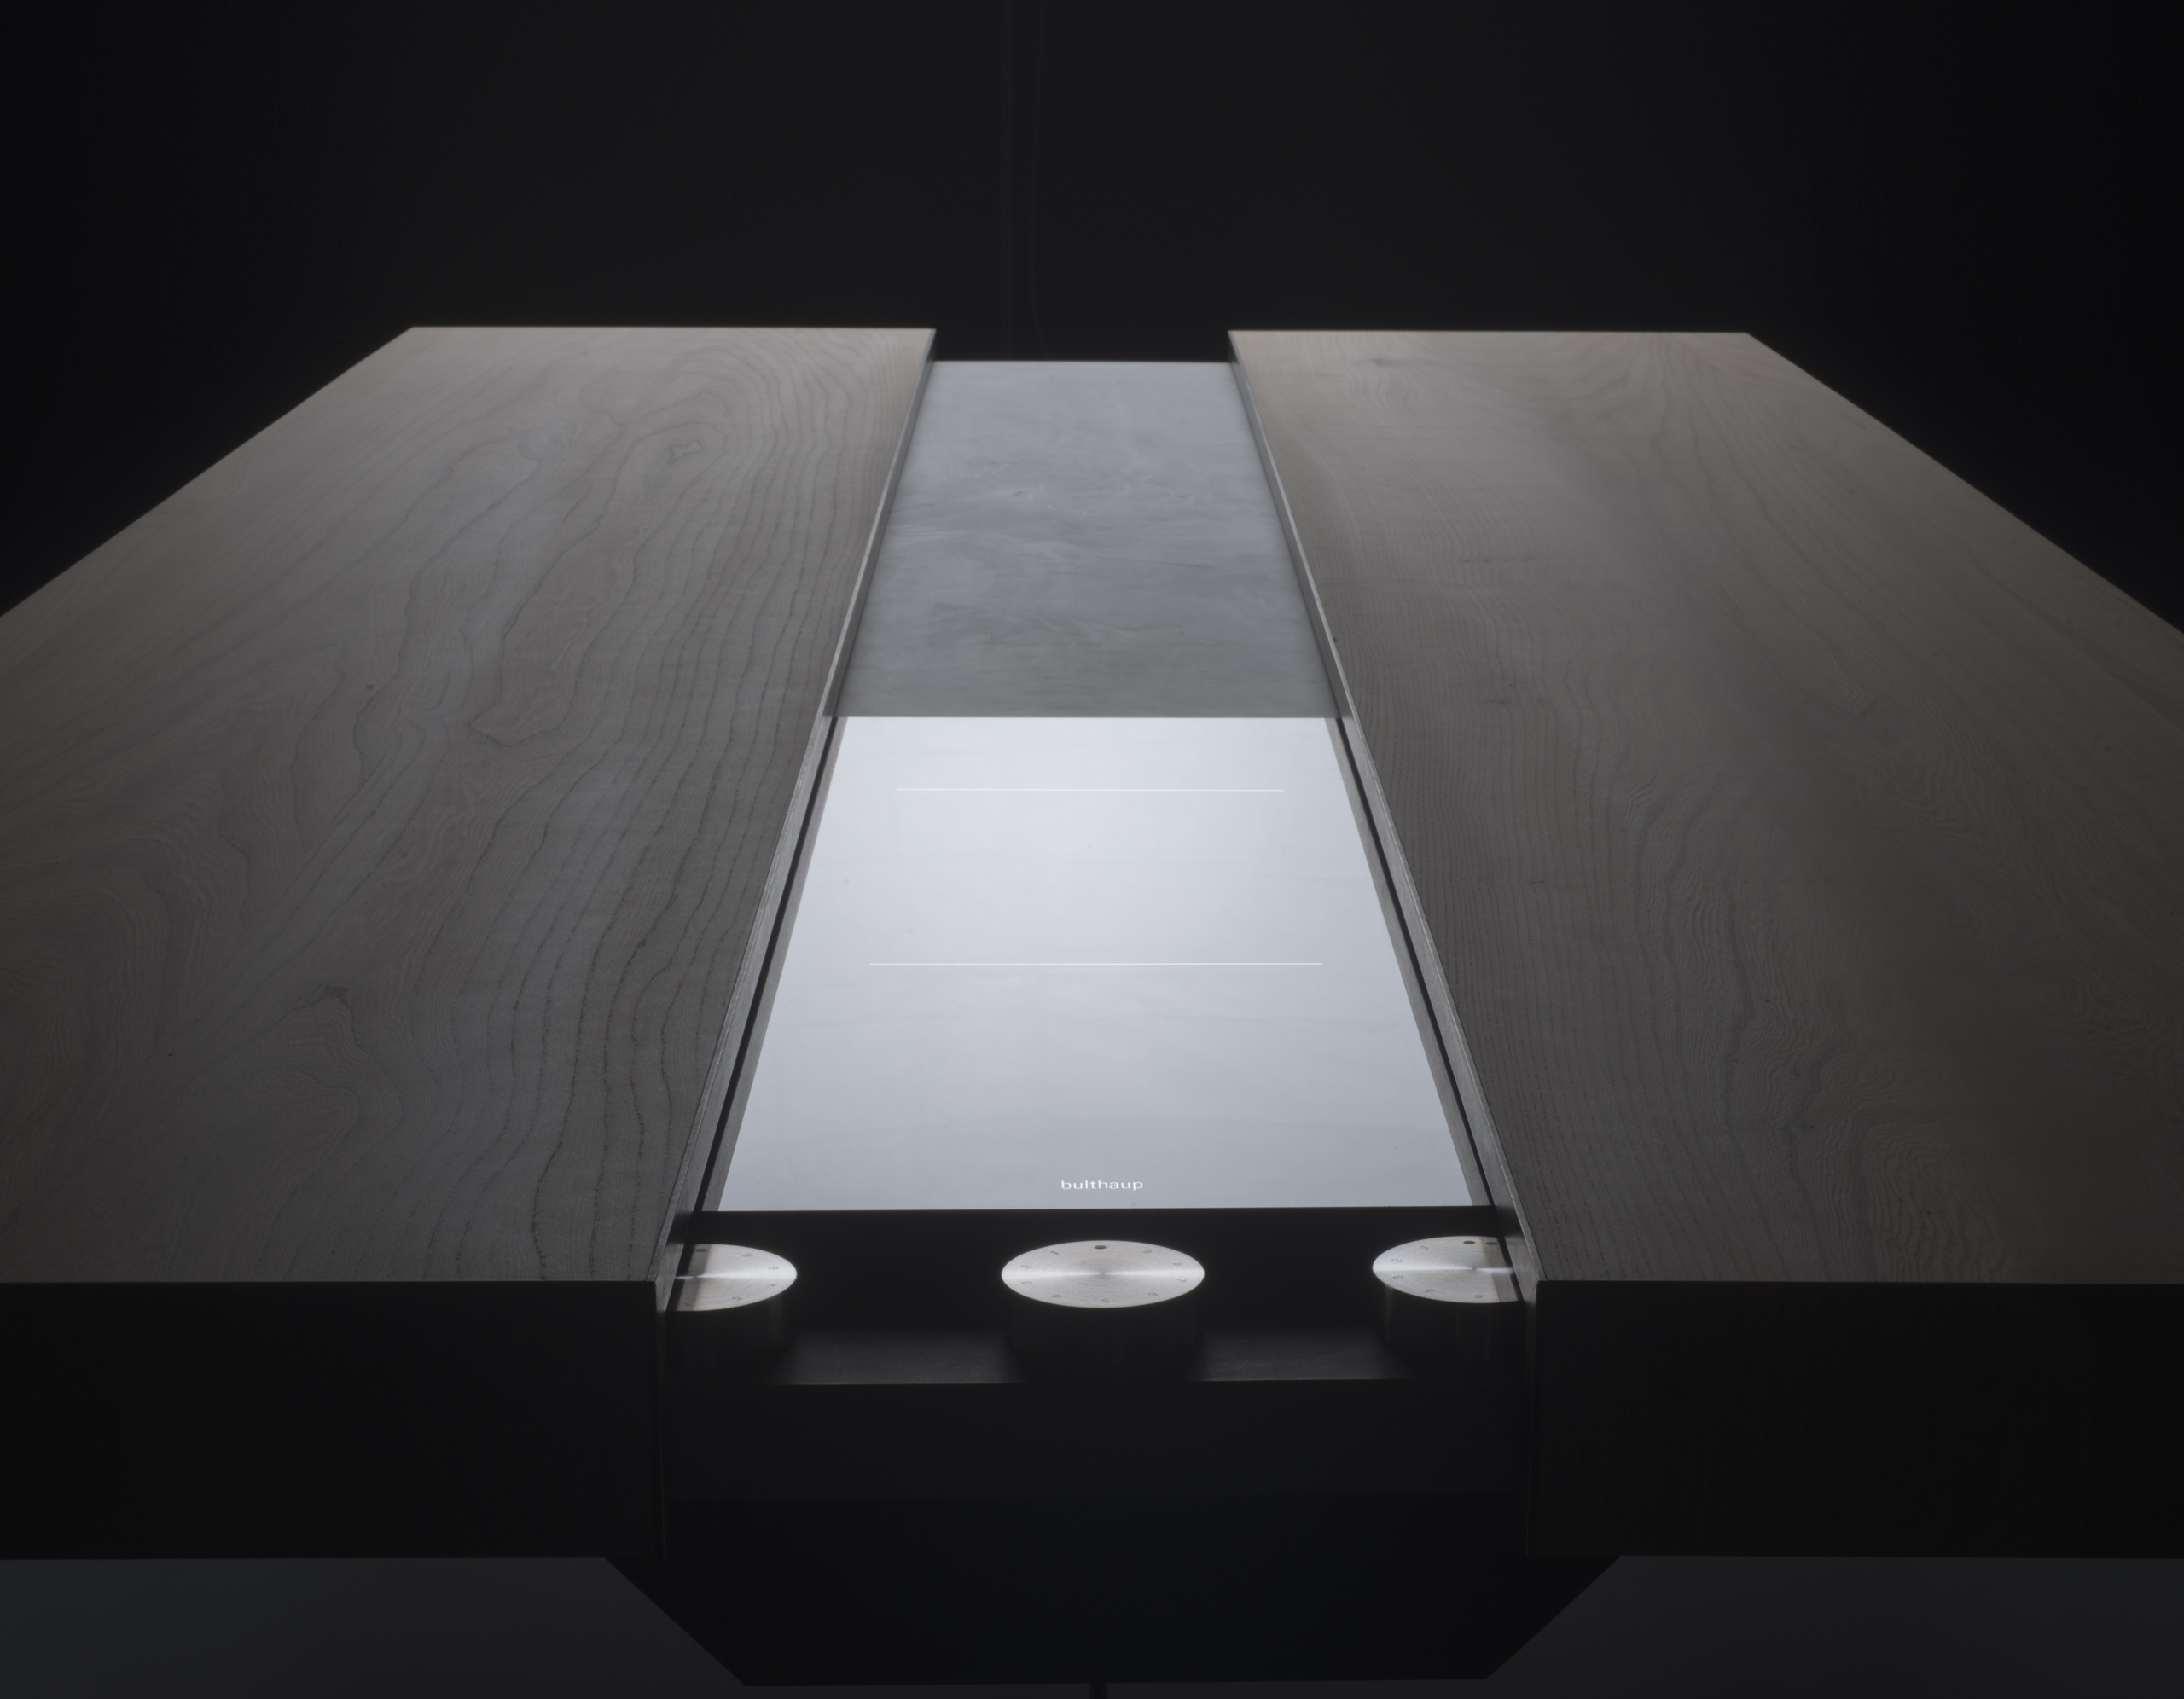 relvaokellermann_bulthaup_cooking table_5